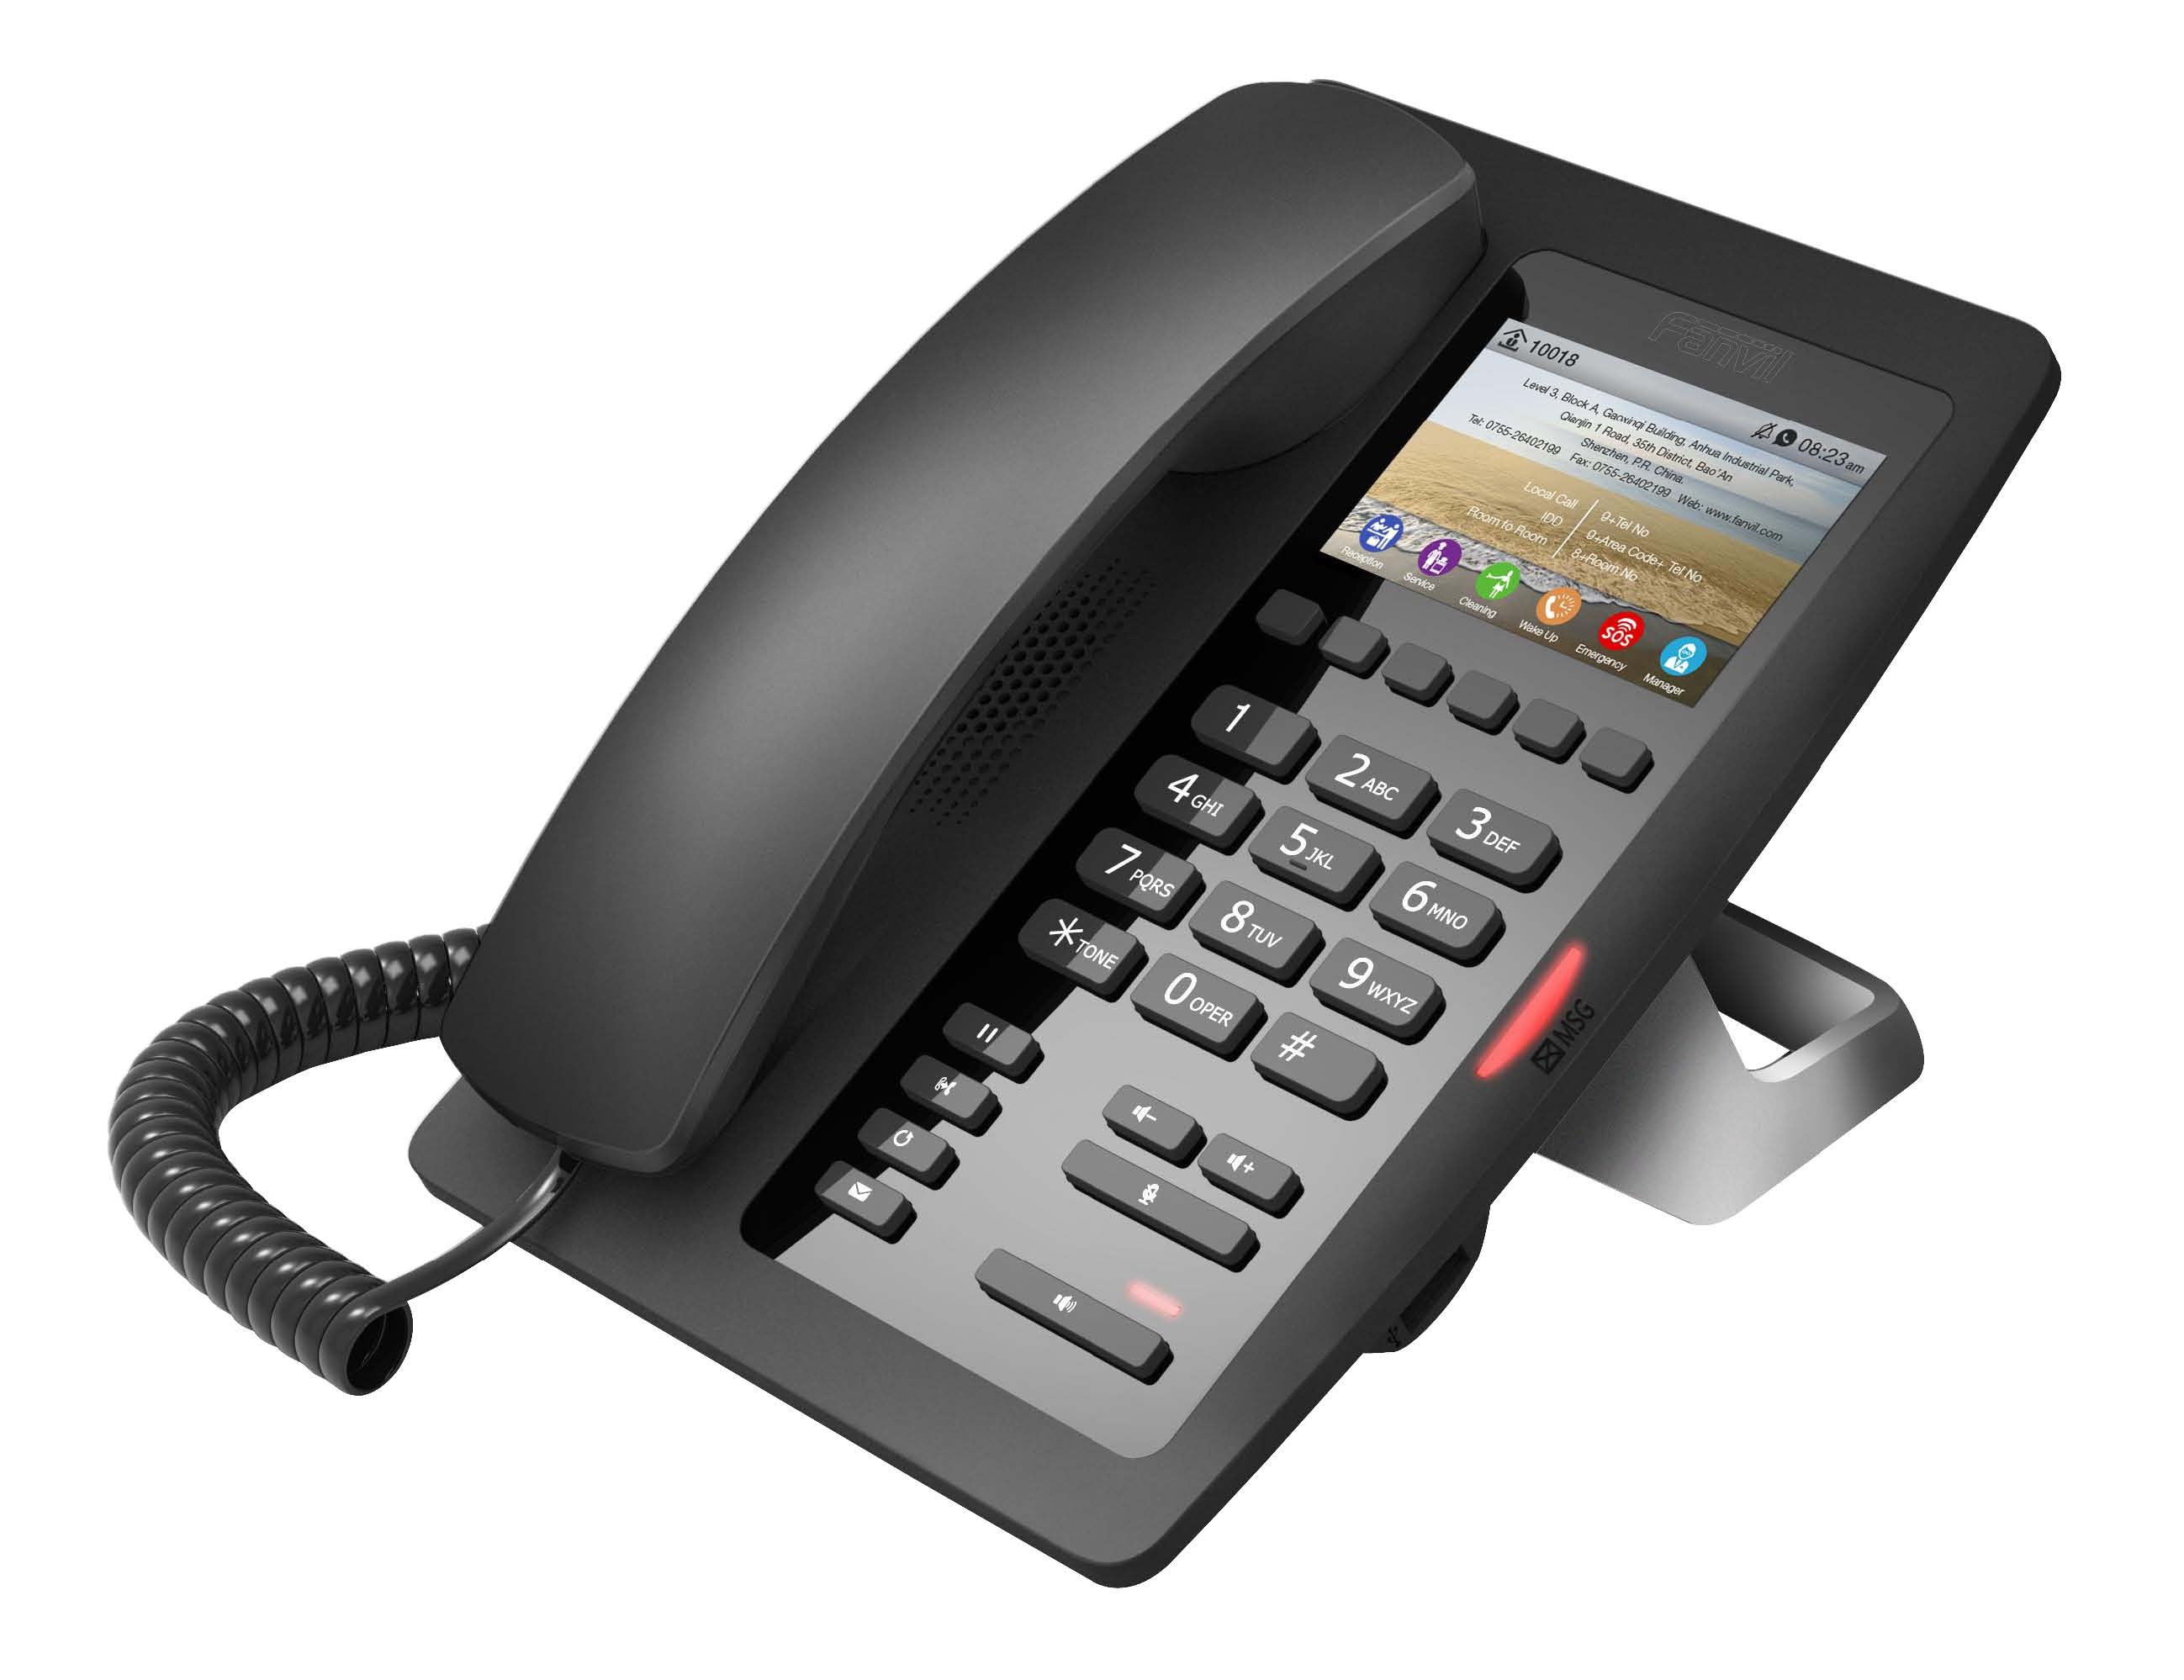 Infinity 2500 Hospitality Ip Phone Quick Start Guide Documentation Hotel Telephone Wiring Diagram Safety Instructions